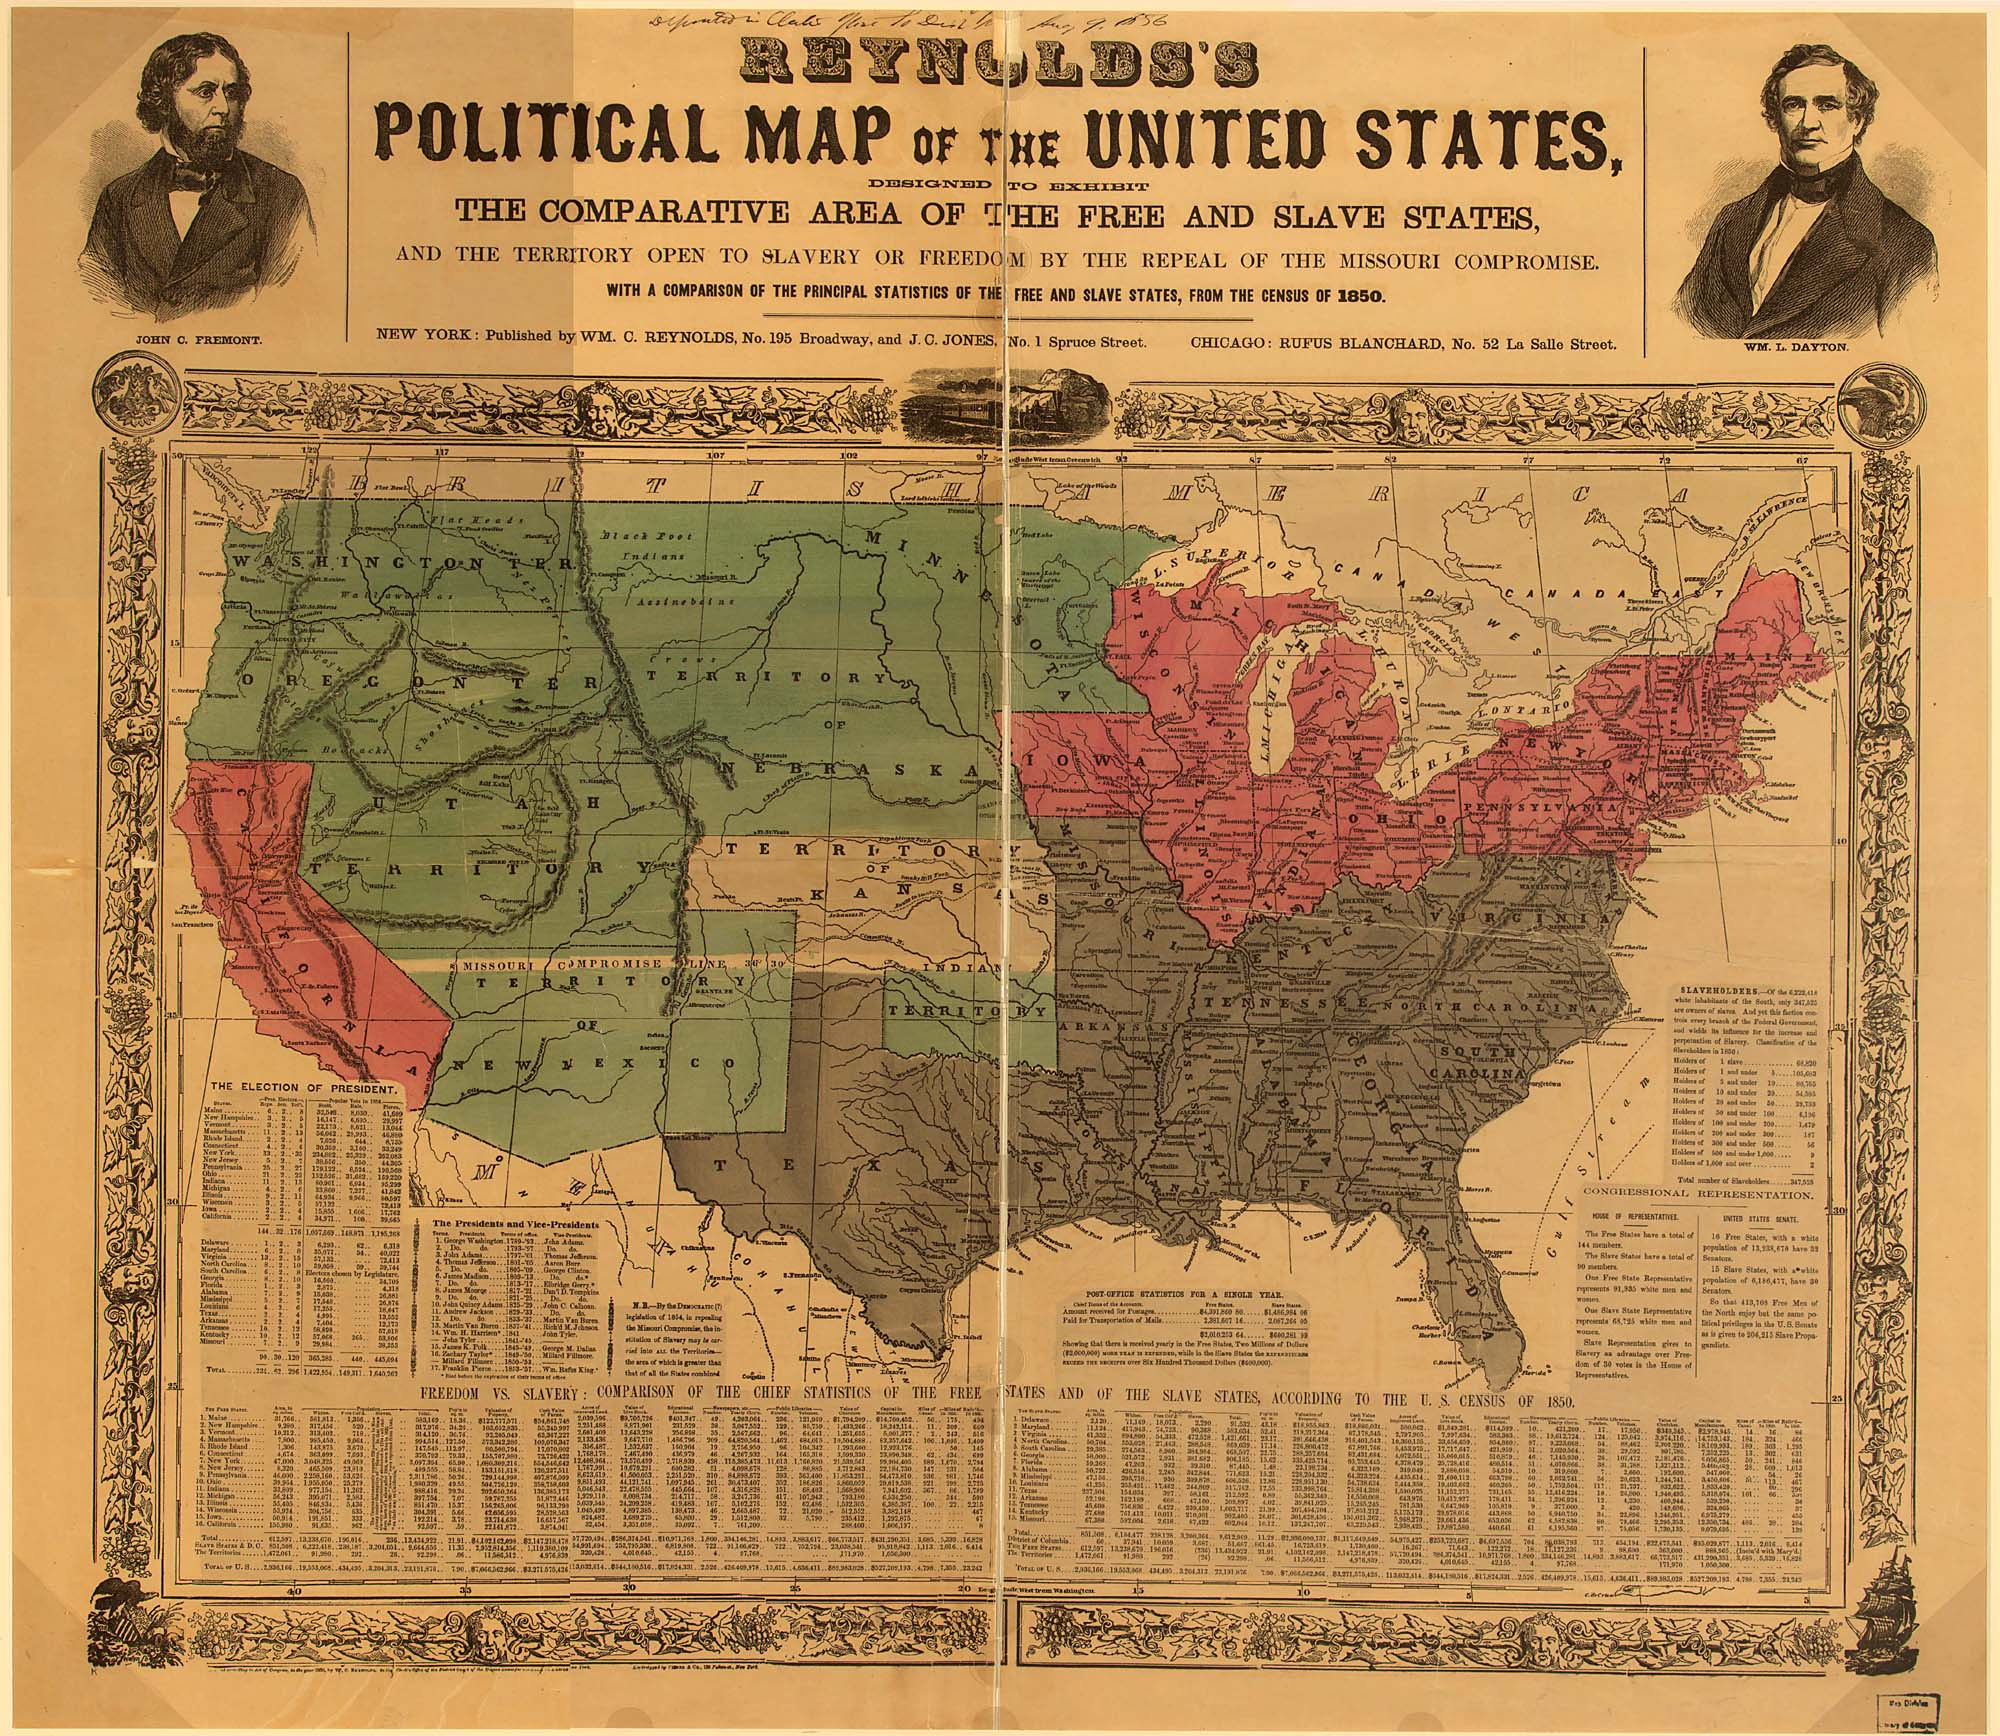 an analysis of the effects of the american civil war on the economies of the american north and sout The american civil war was devastating to the south even beforethe war, the south for the most part, had remainednon-industrialized by the end of the war, it was really farbehindthe north.